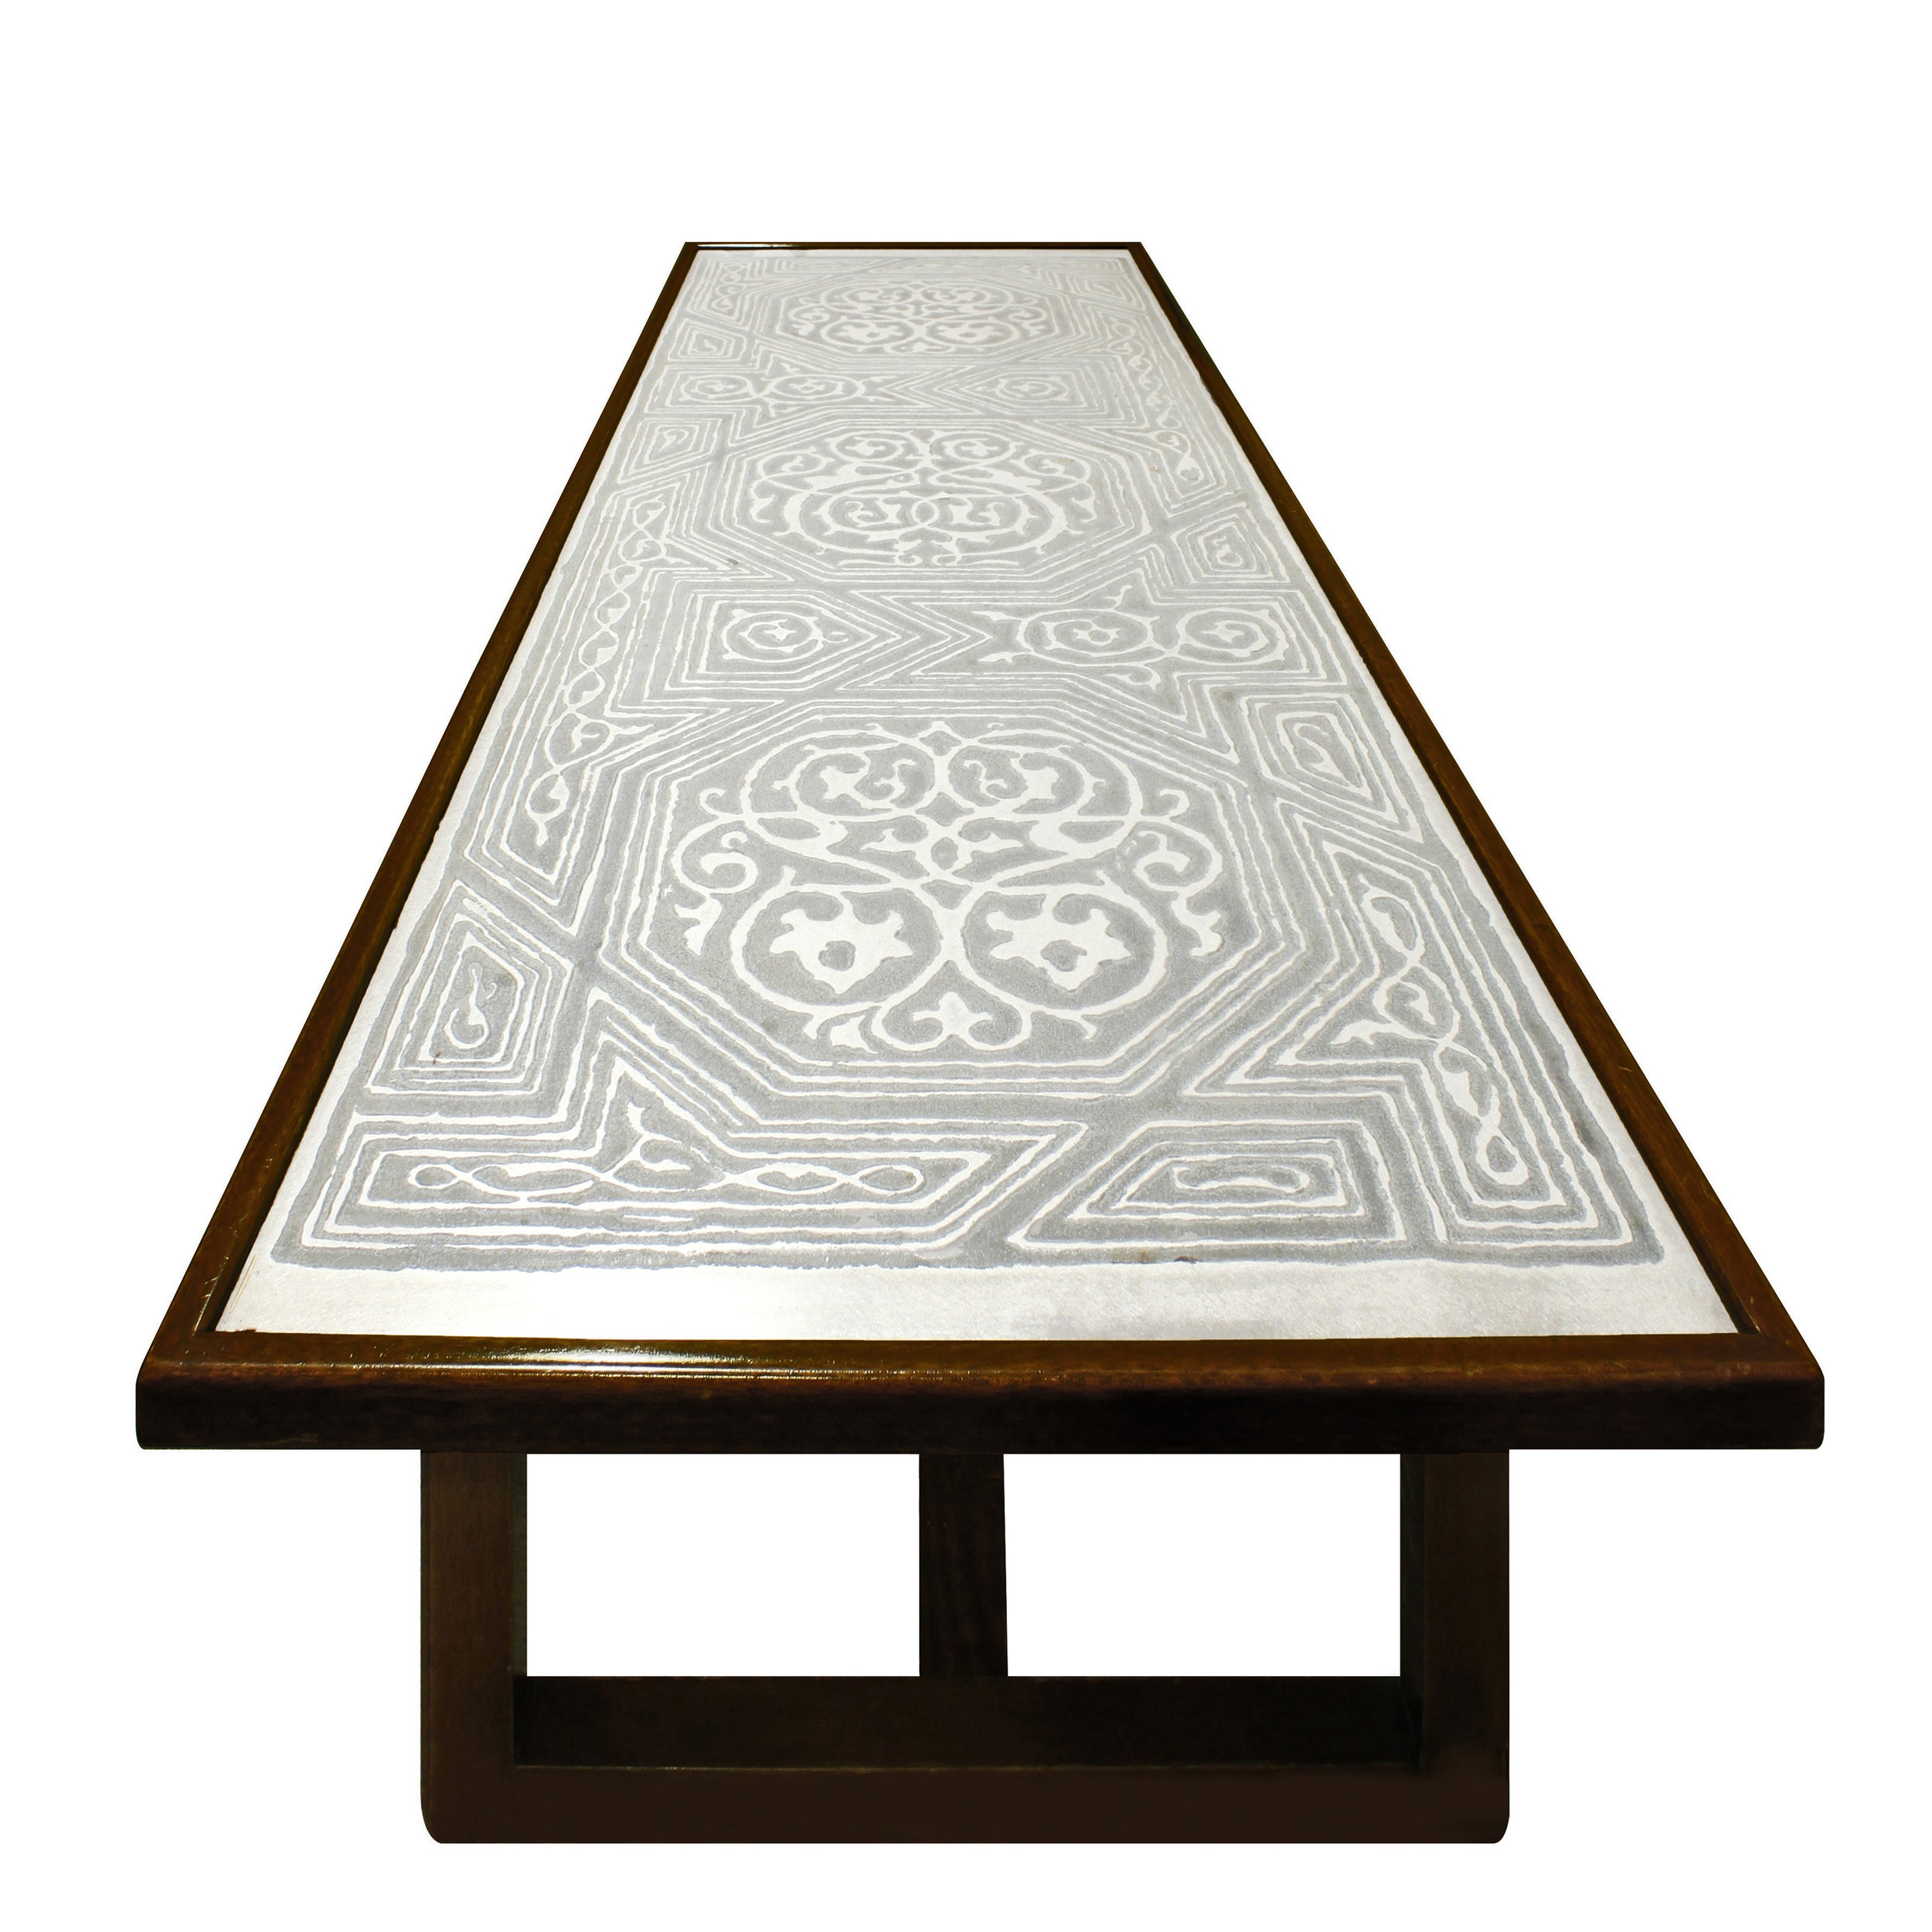 Probber 120 etched metal top coffeetable402 sde.jpg